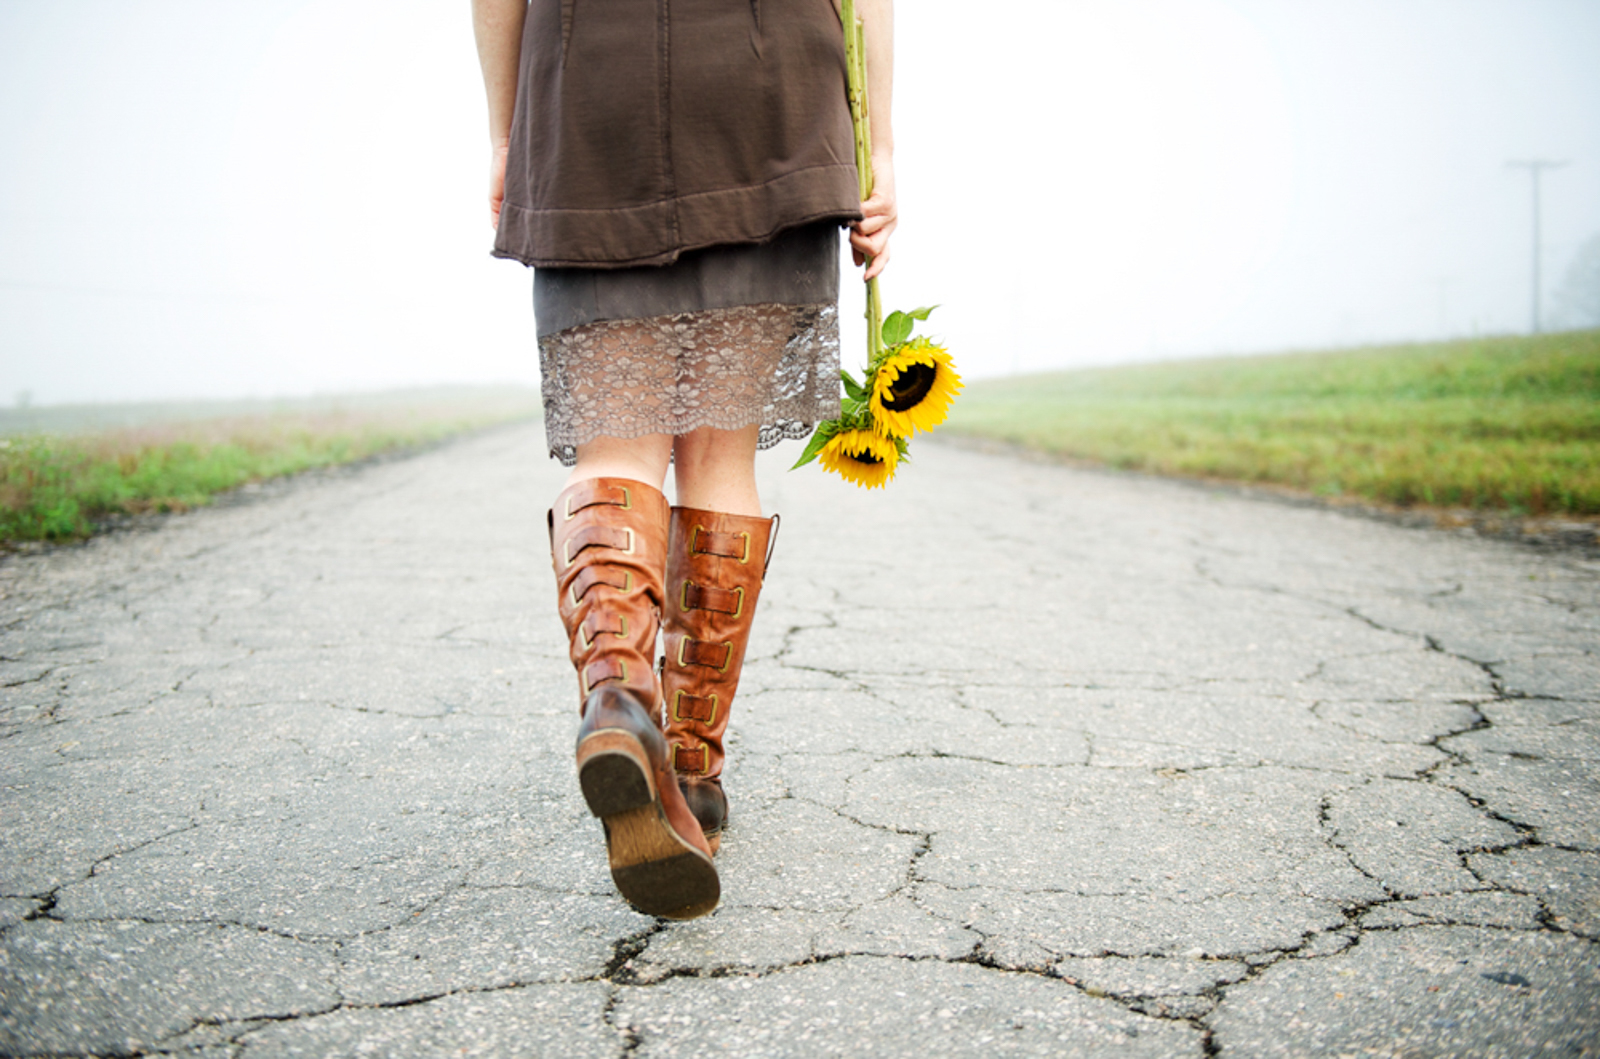 woman walking along road with sunflowers